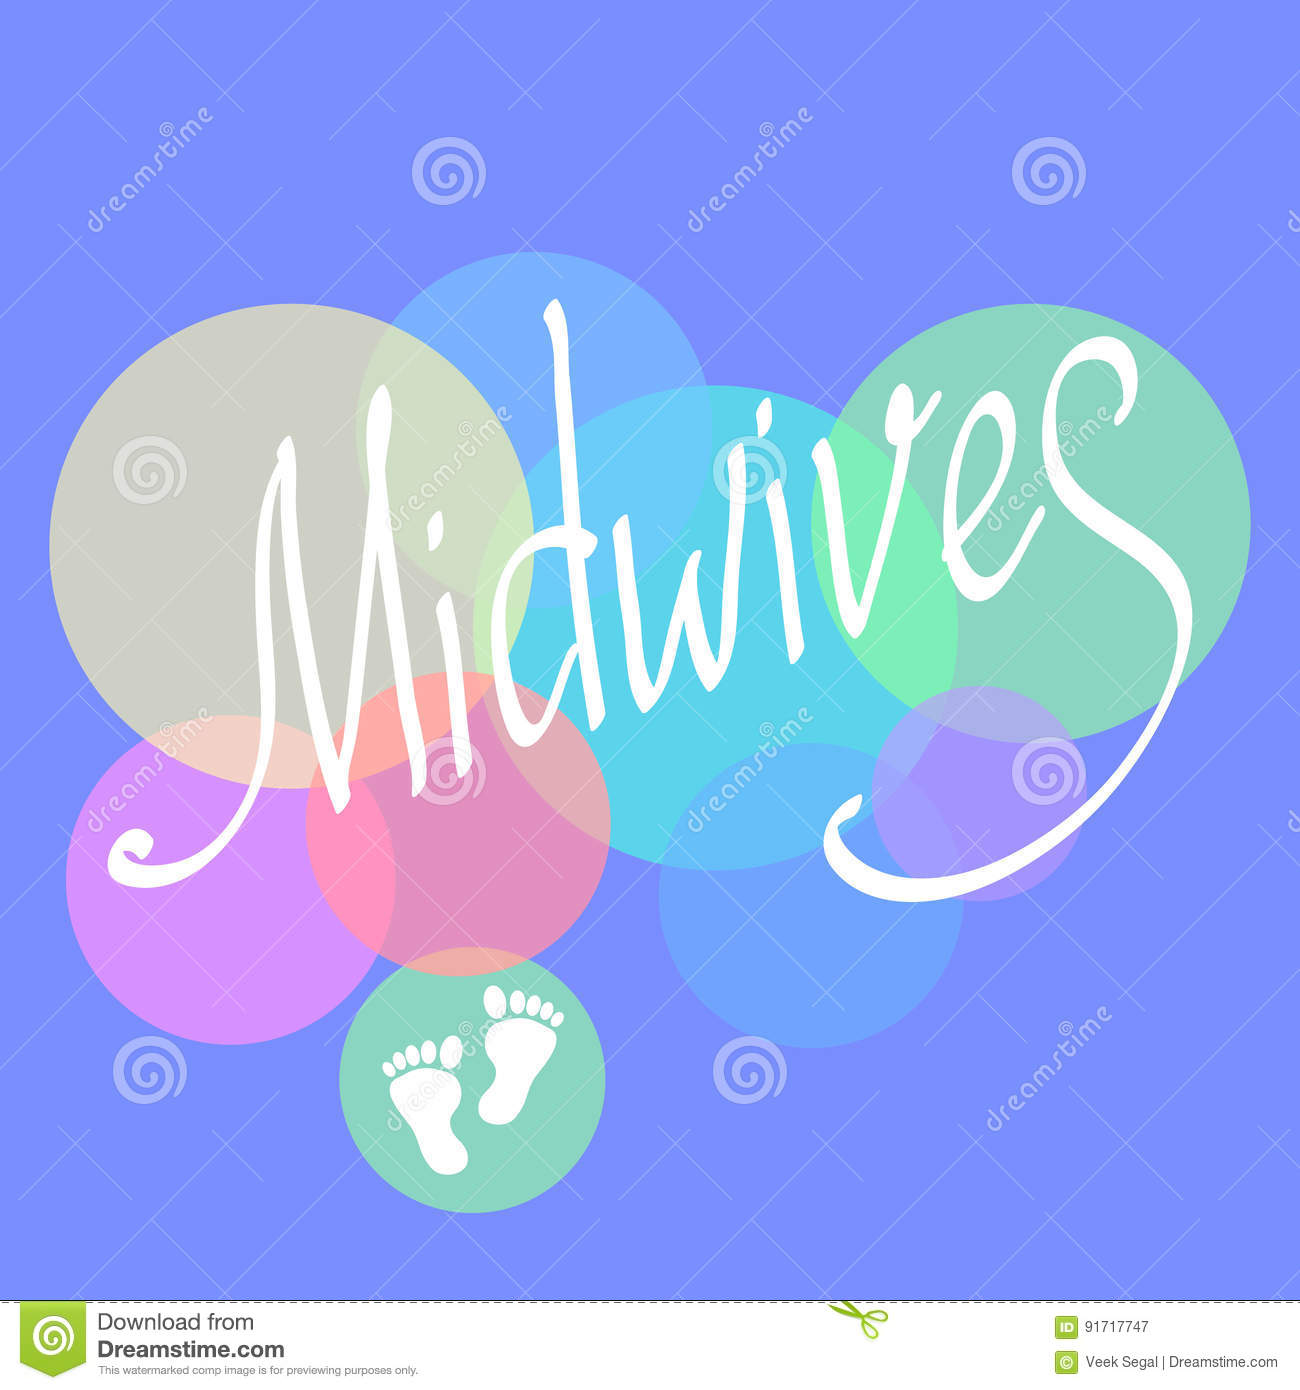 Midwives Day 5 May Vector Illustration For International Midwives